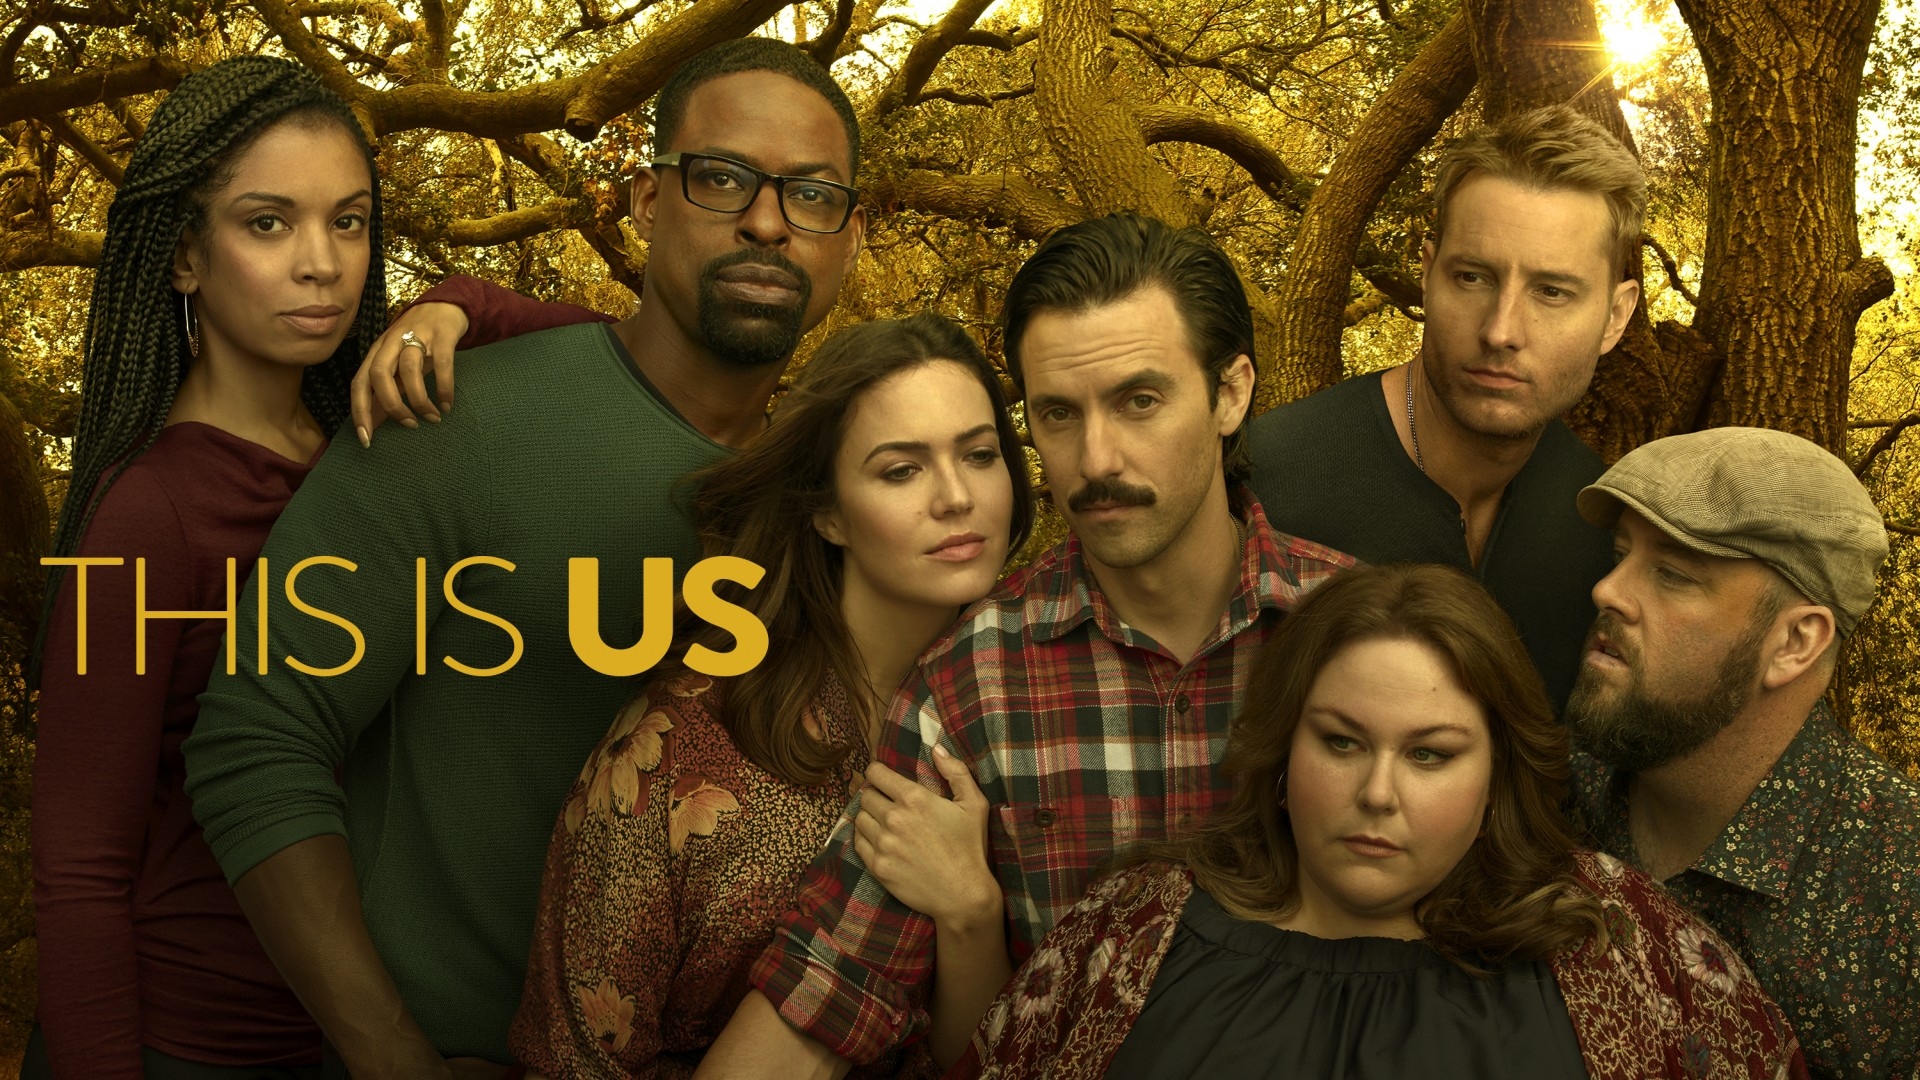 This Is Us custom content integration begins January, 15, 2019.